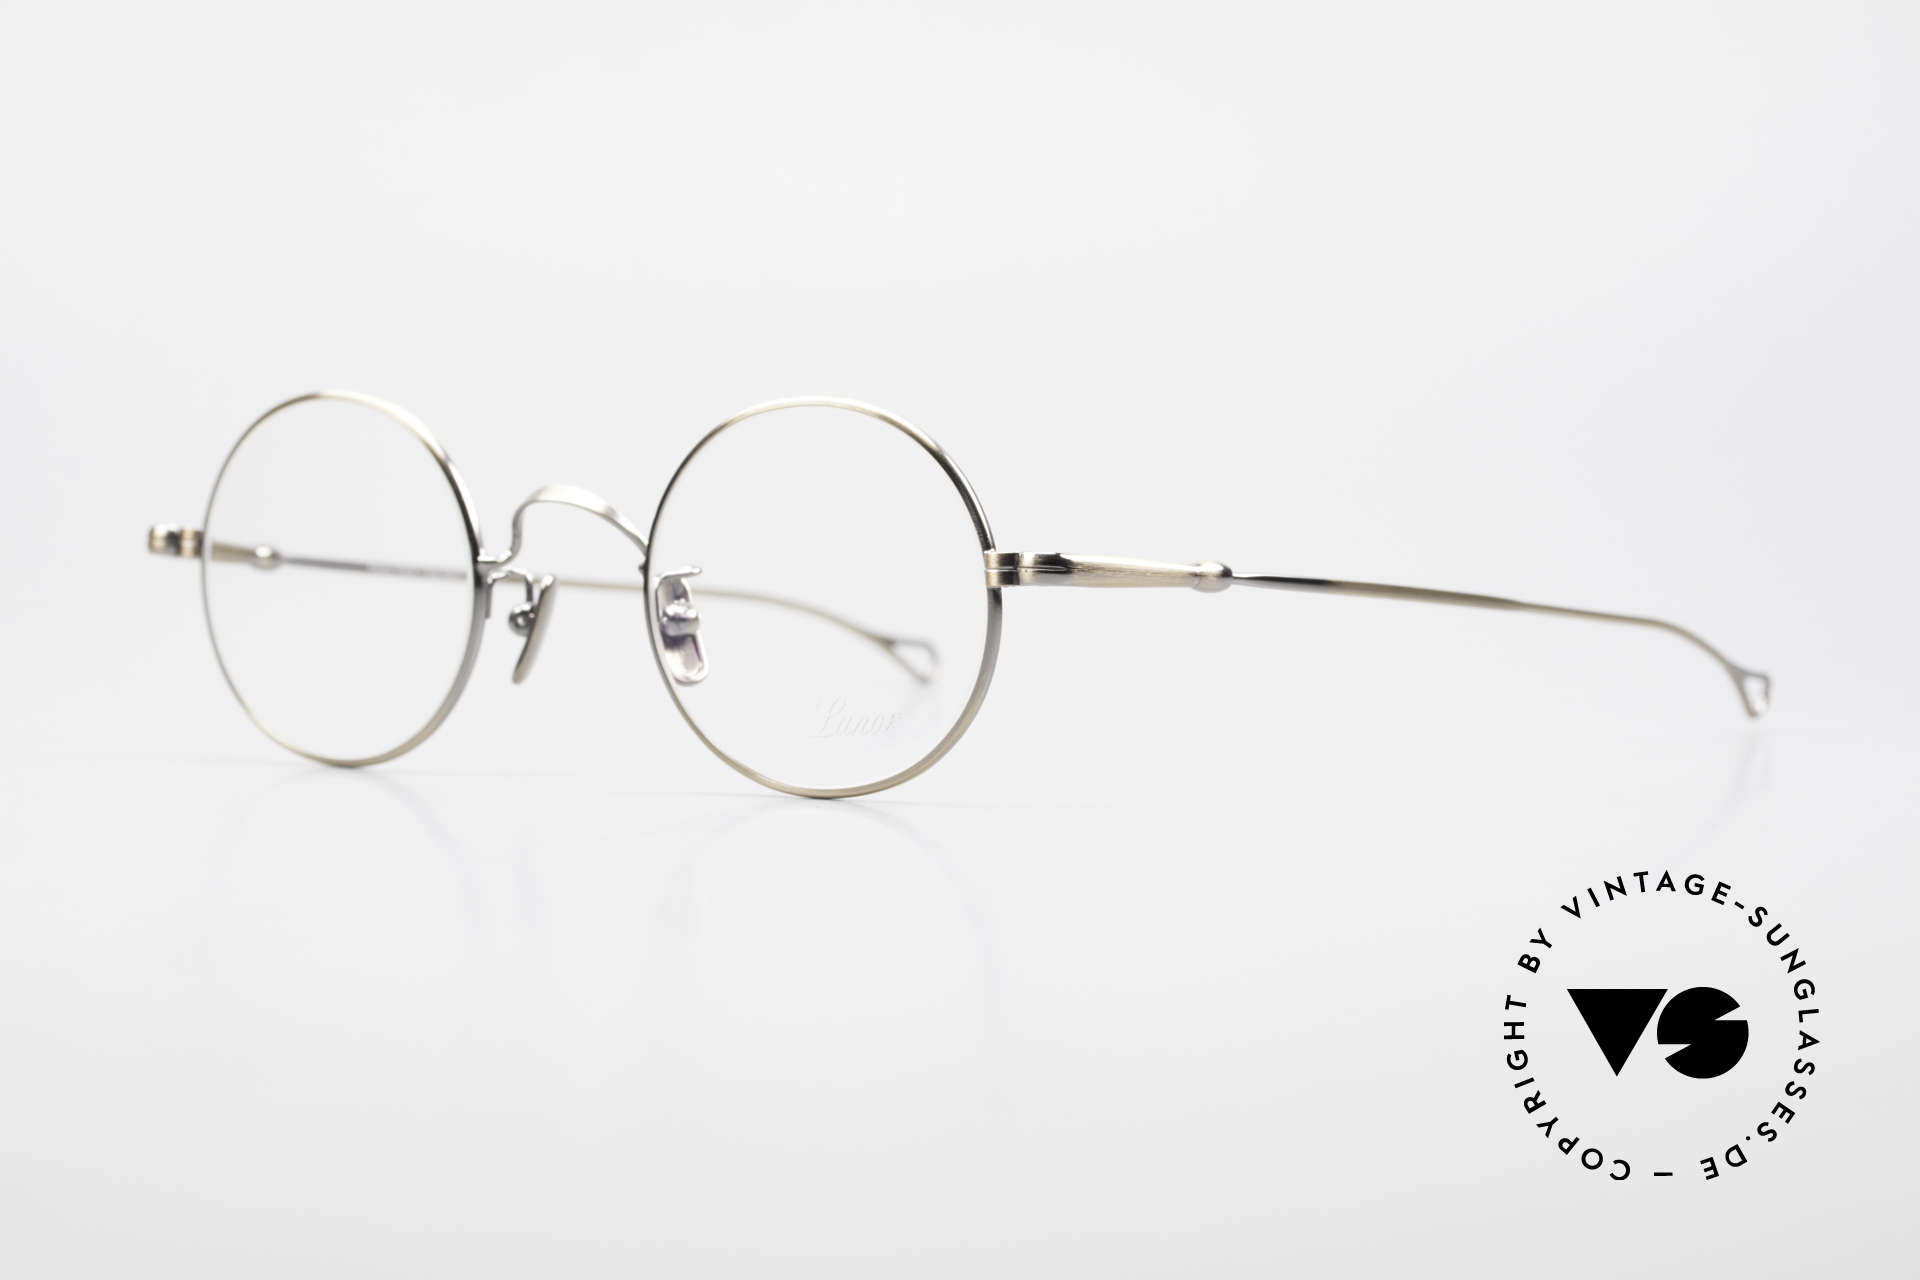 Lunor V 110 Round Lunor Glasses Vintage, without ostentatious logos (but in a timeless elegance), Made for Men and Women